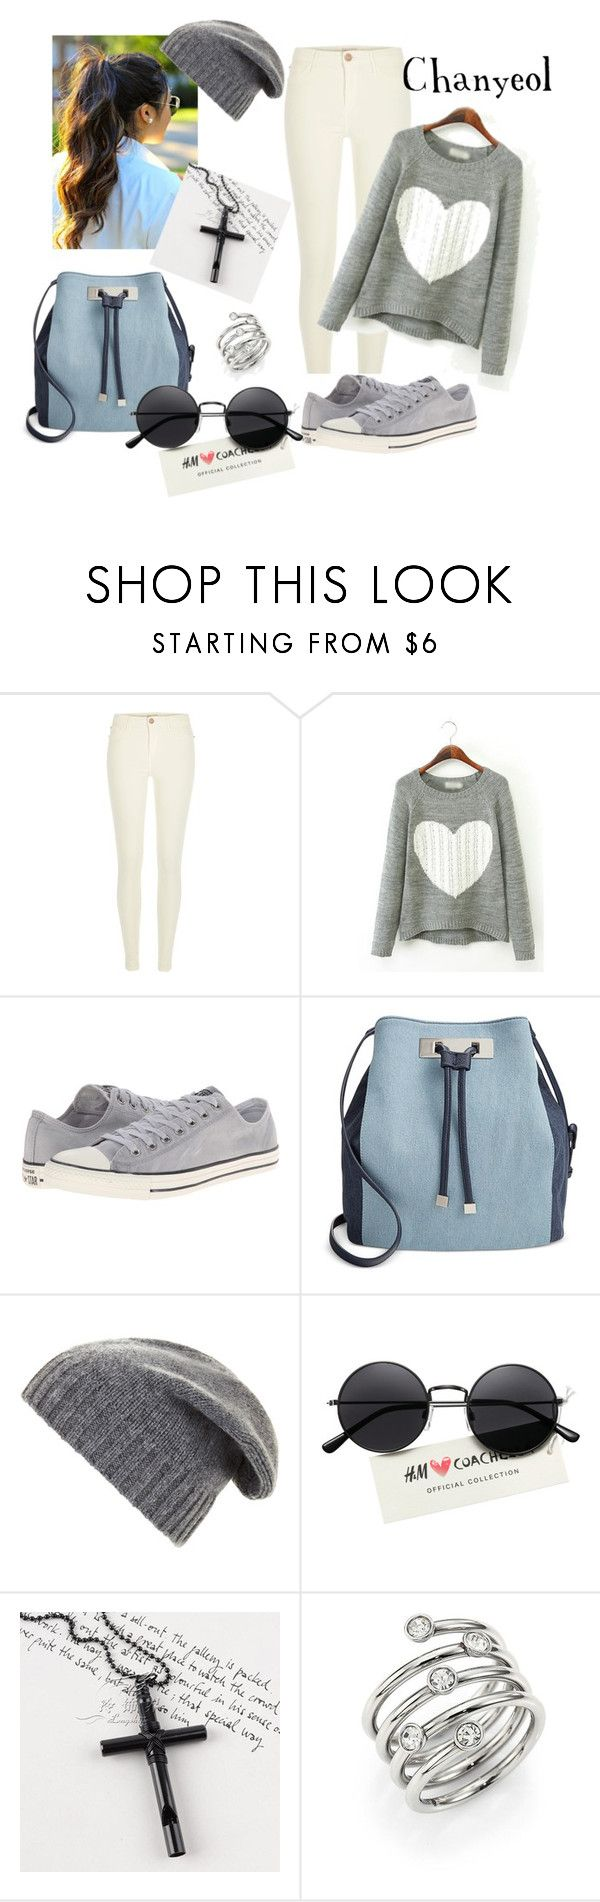 Chanyeol Exo Airport by carol dalla on Polyvore featuring moda, River Island.